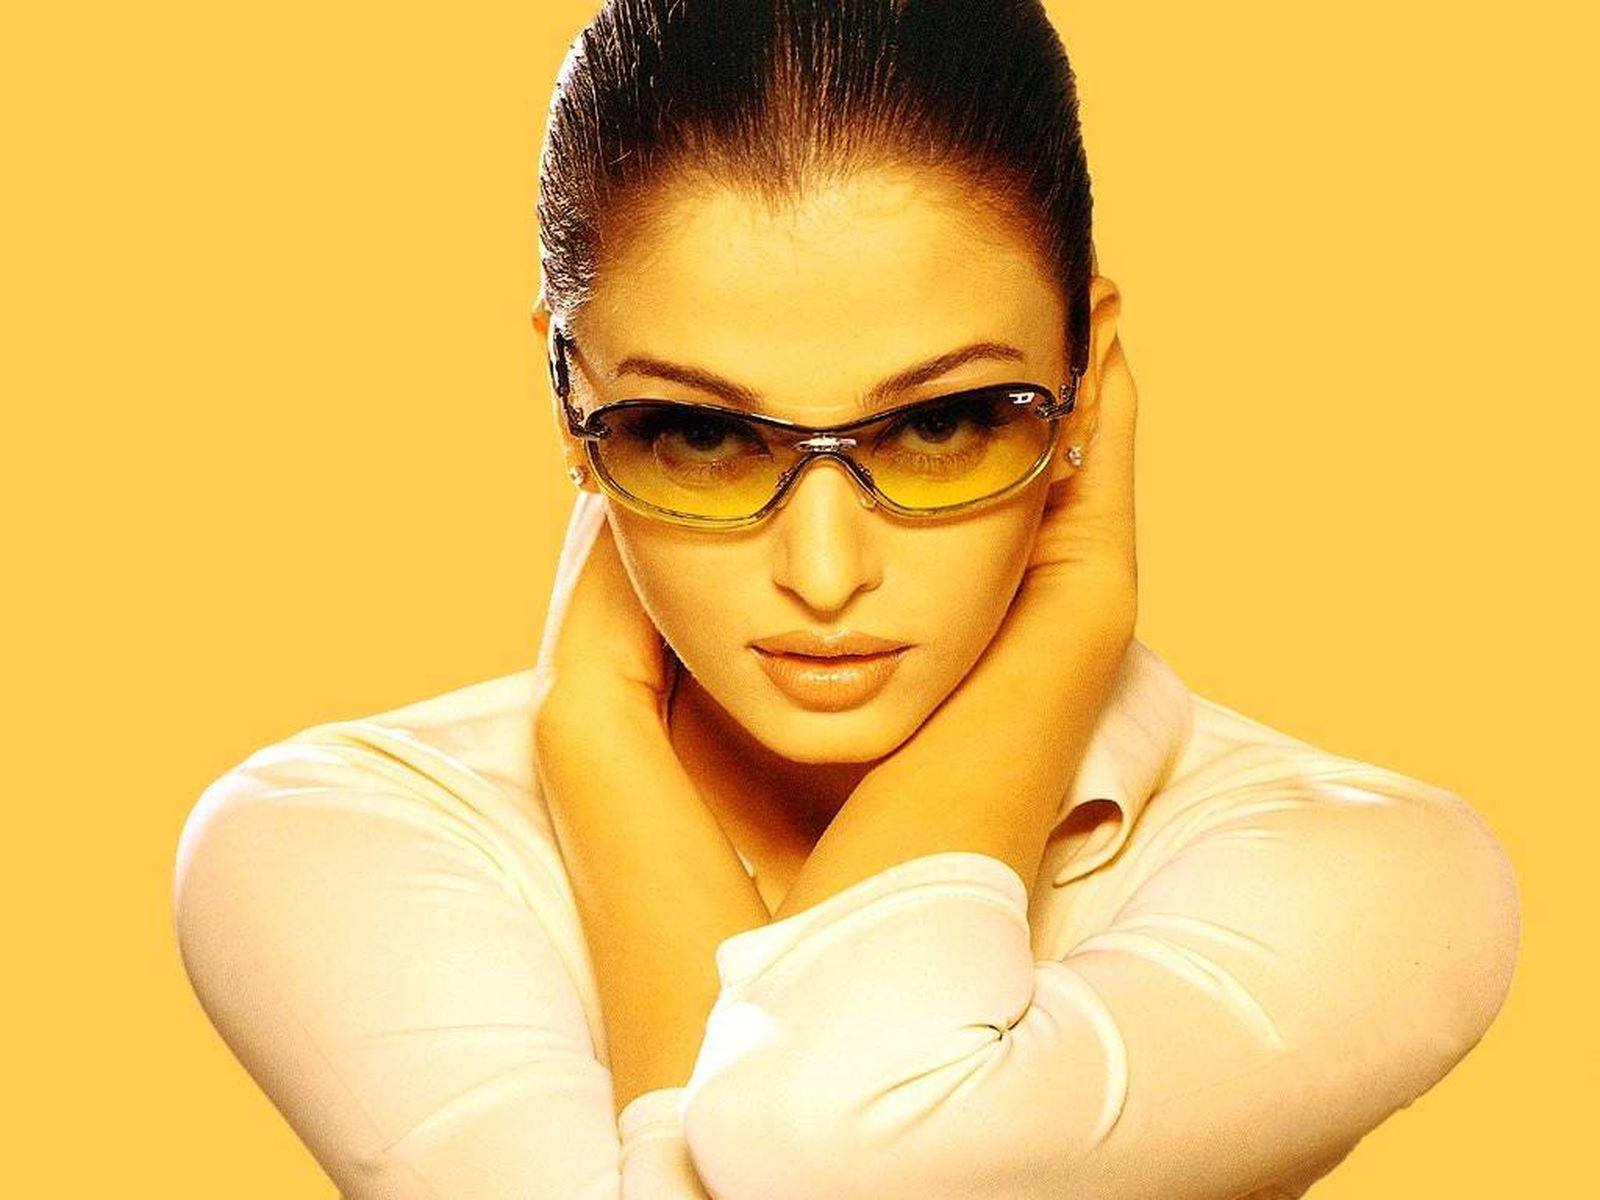 aishwarya_rai-wallpaper_2147483665